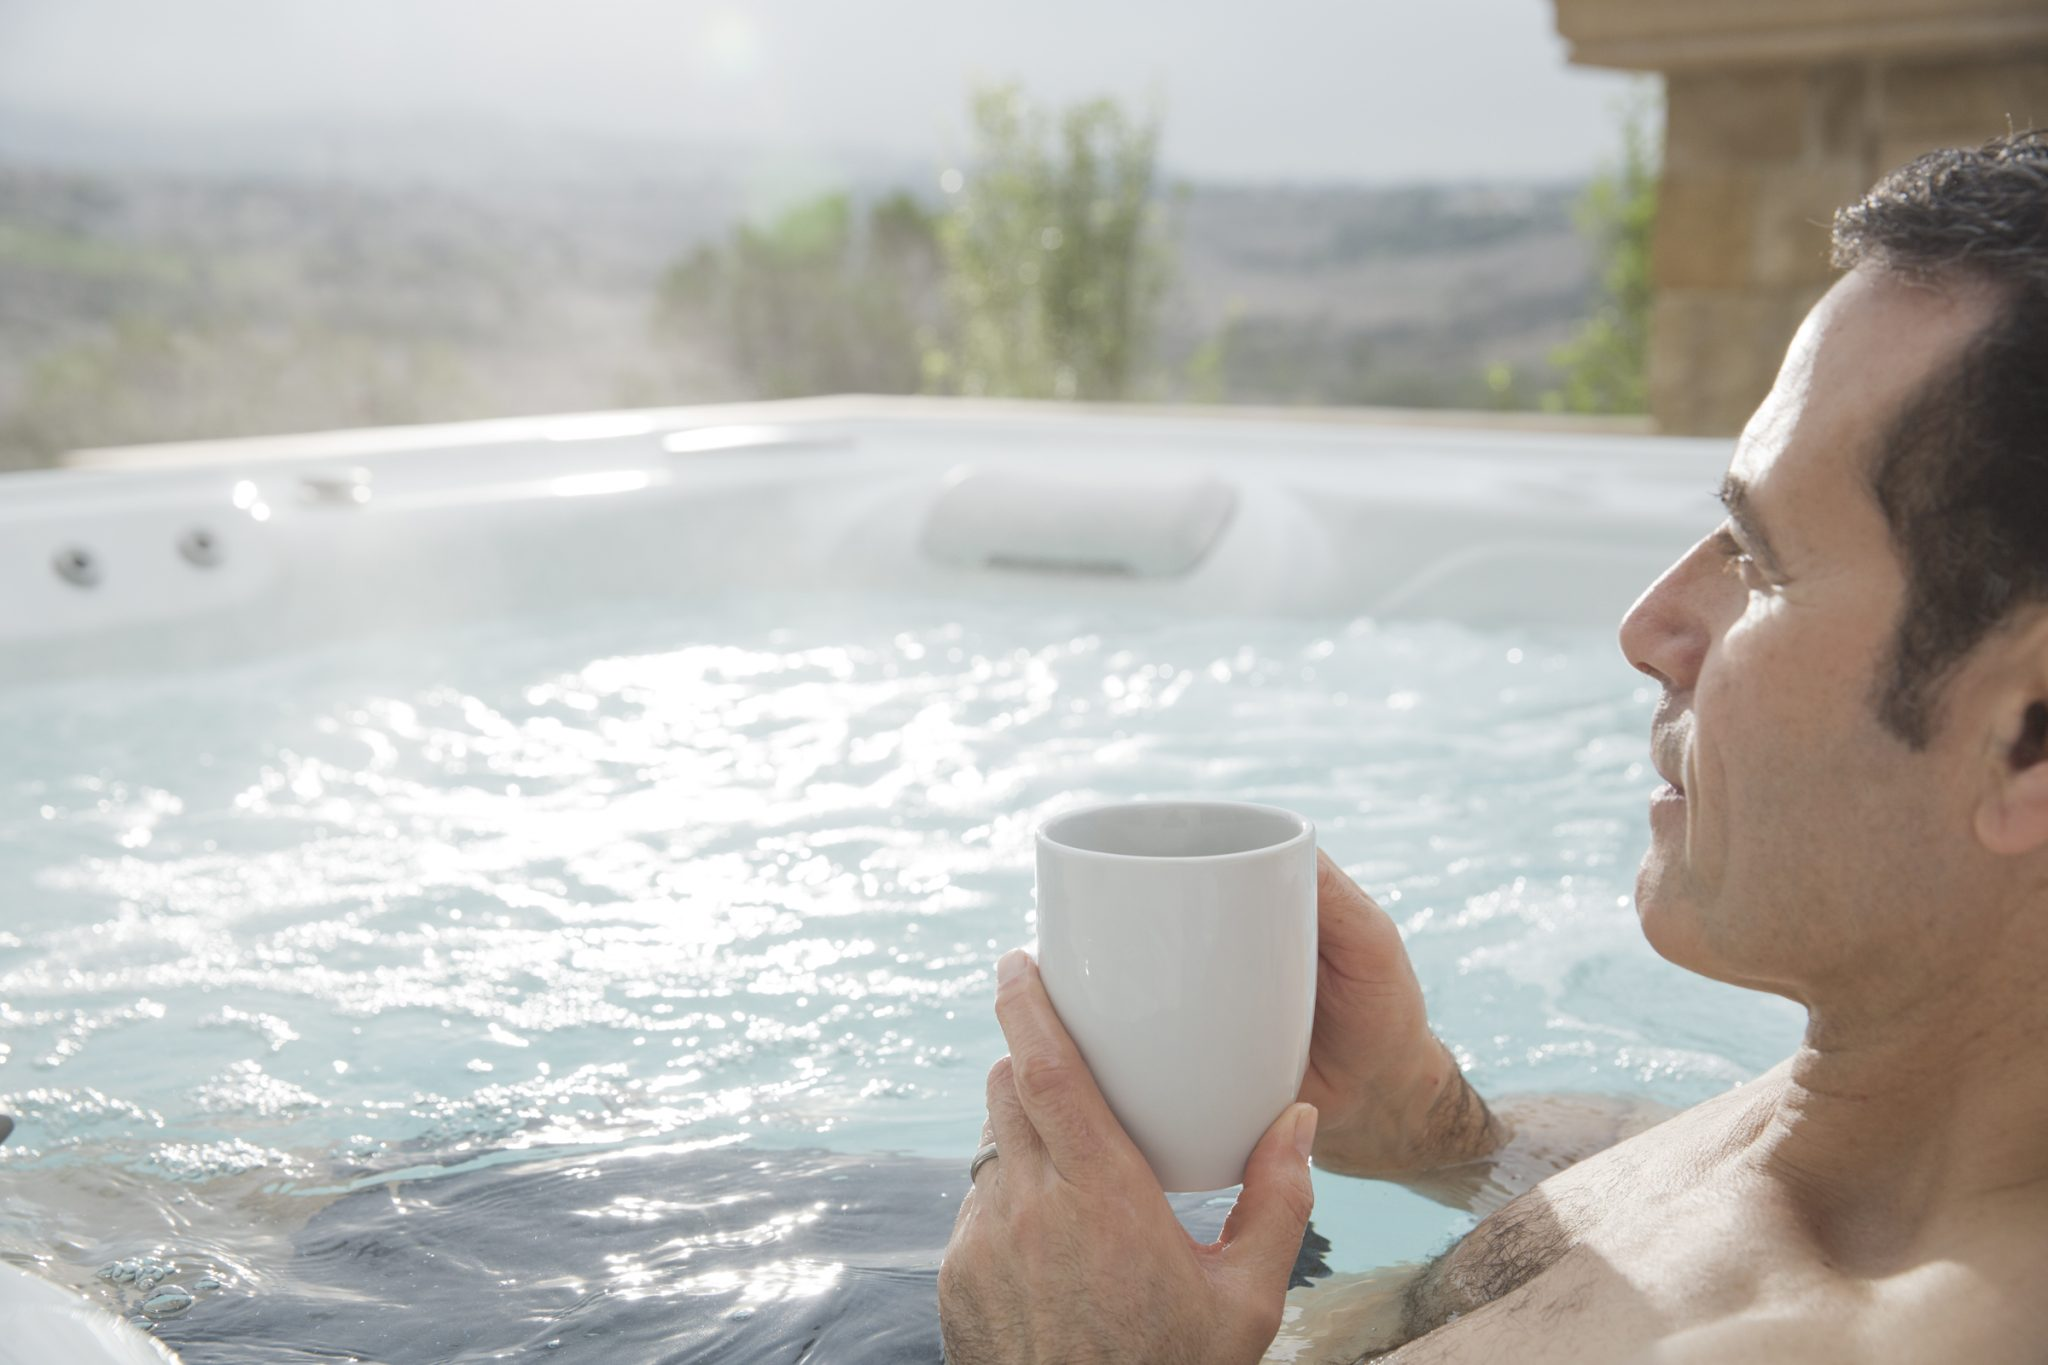 Check out these safety tips for winter hot tub fun!